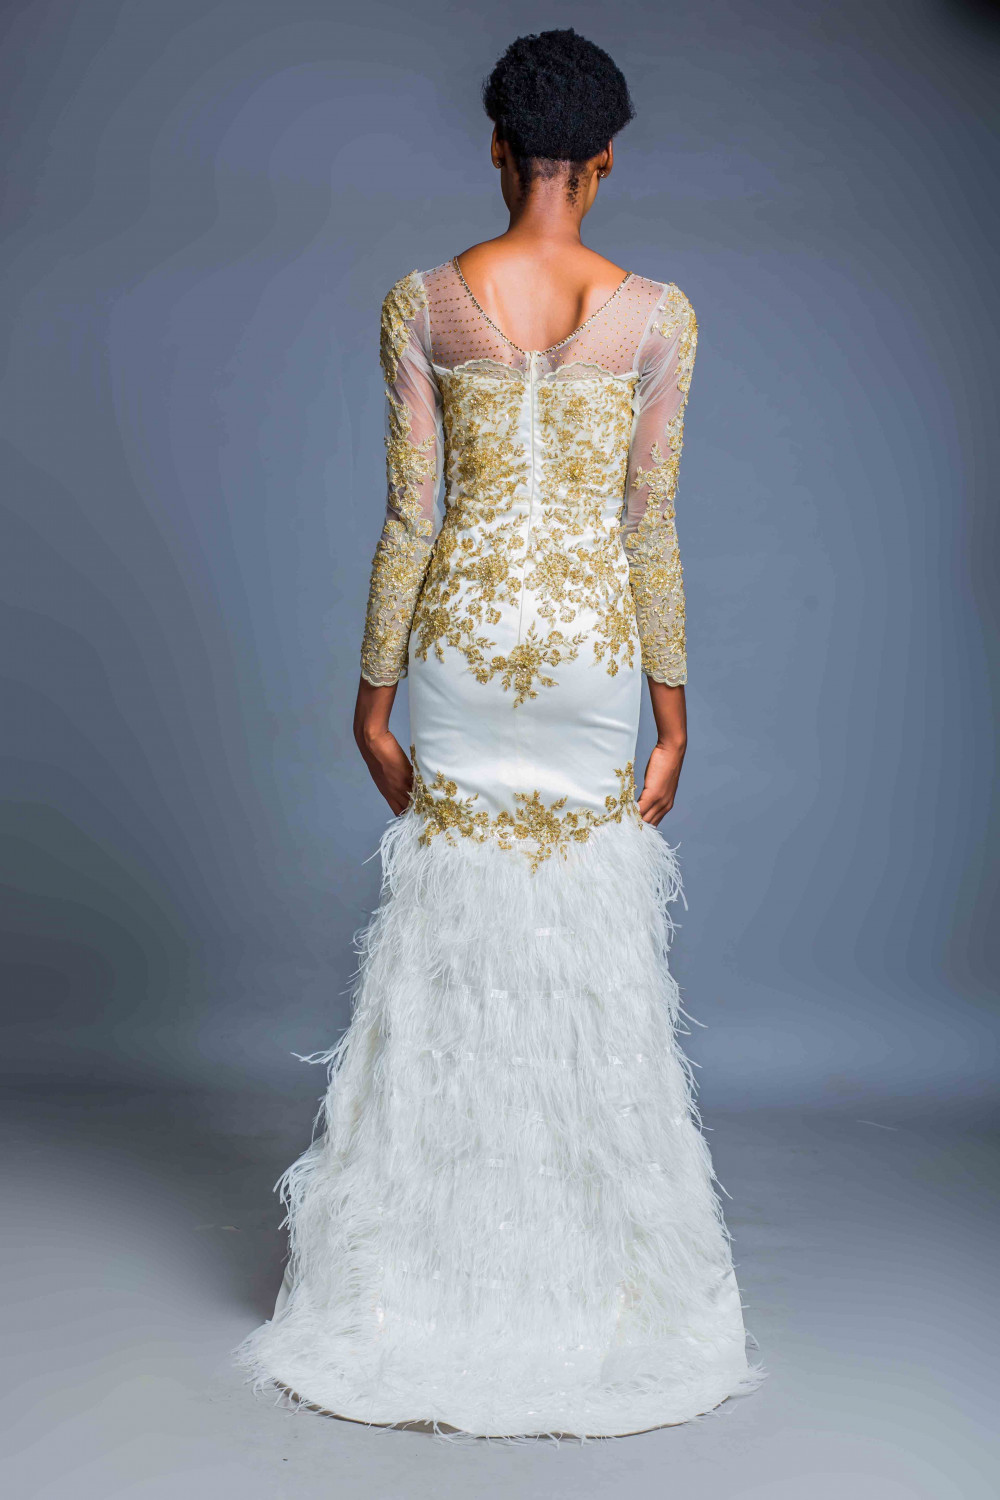 Hollerose Designs 2016 Collection Bridal 10